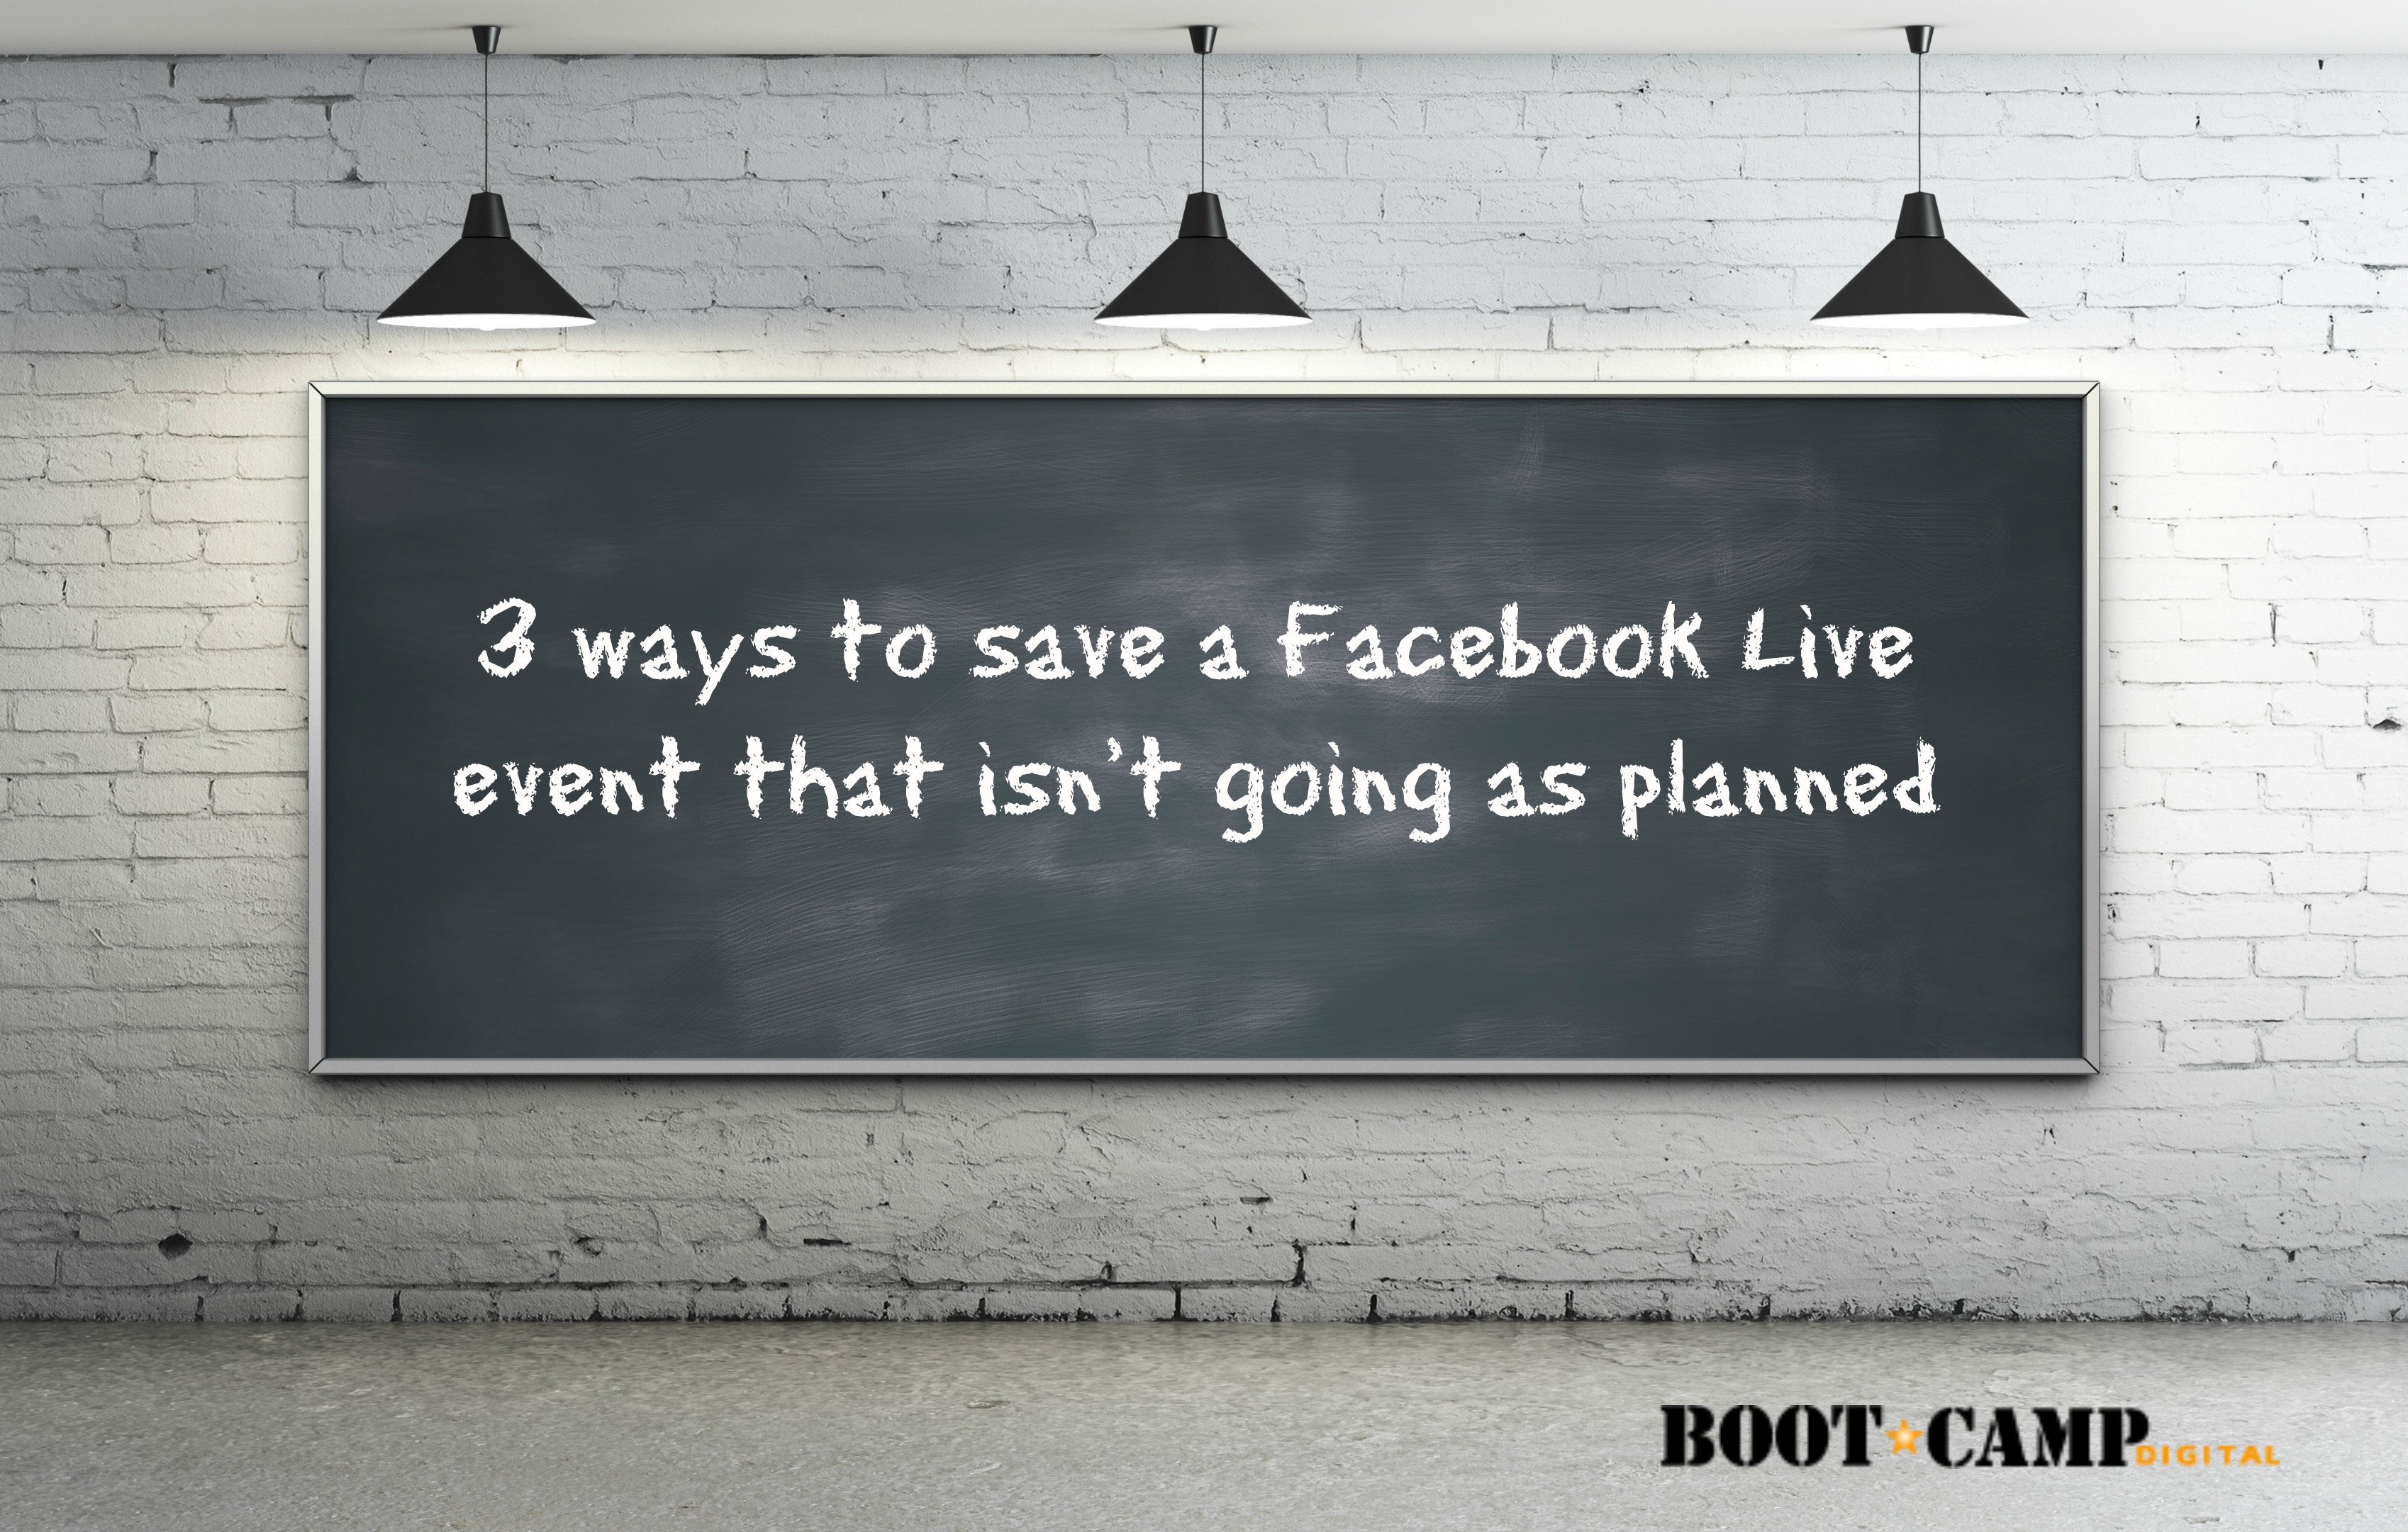 Facebook Live event, Facebook Live, saving a Facebook Live event, Facebook Live tips